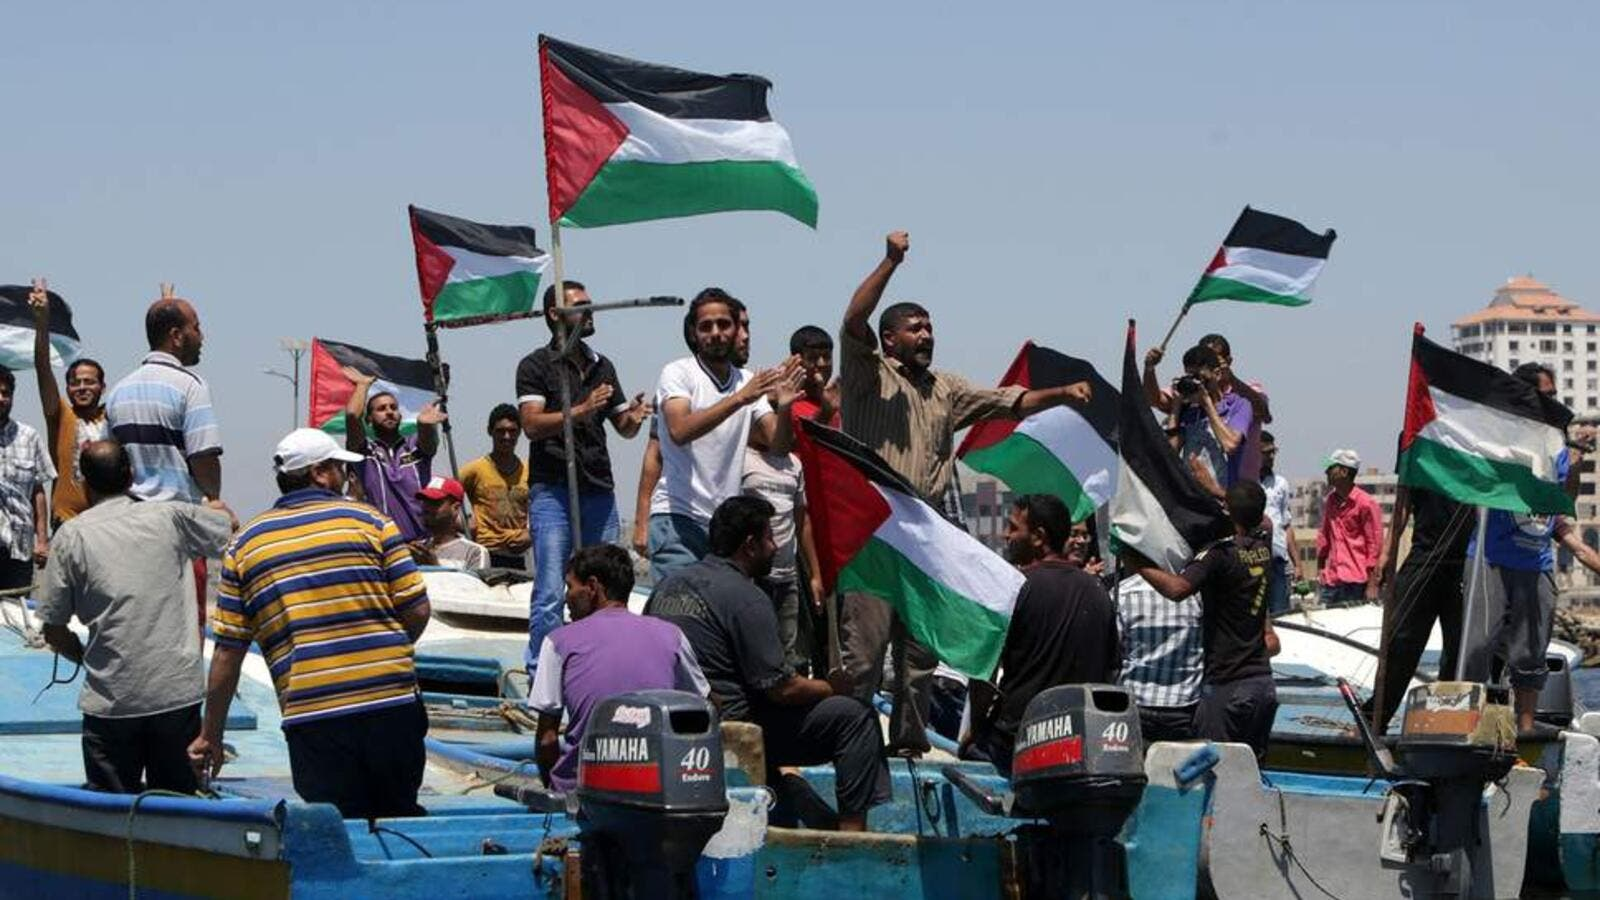 Palestinians rally, Tuesday, in the port of Gaza in support of a flotilla that aimed to break the blockade ( AFP/ File photo)